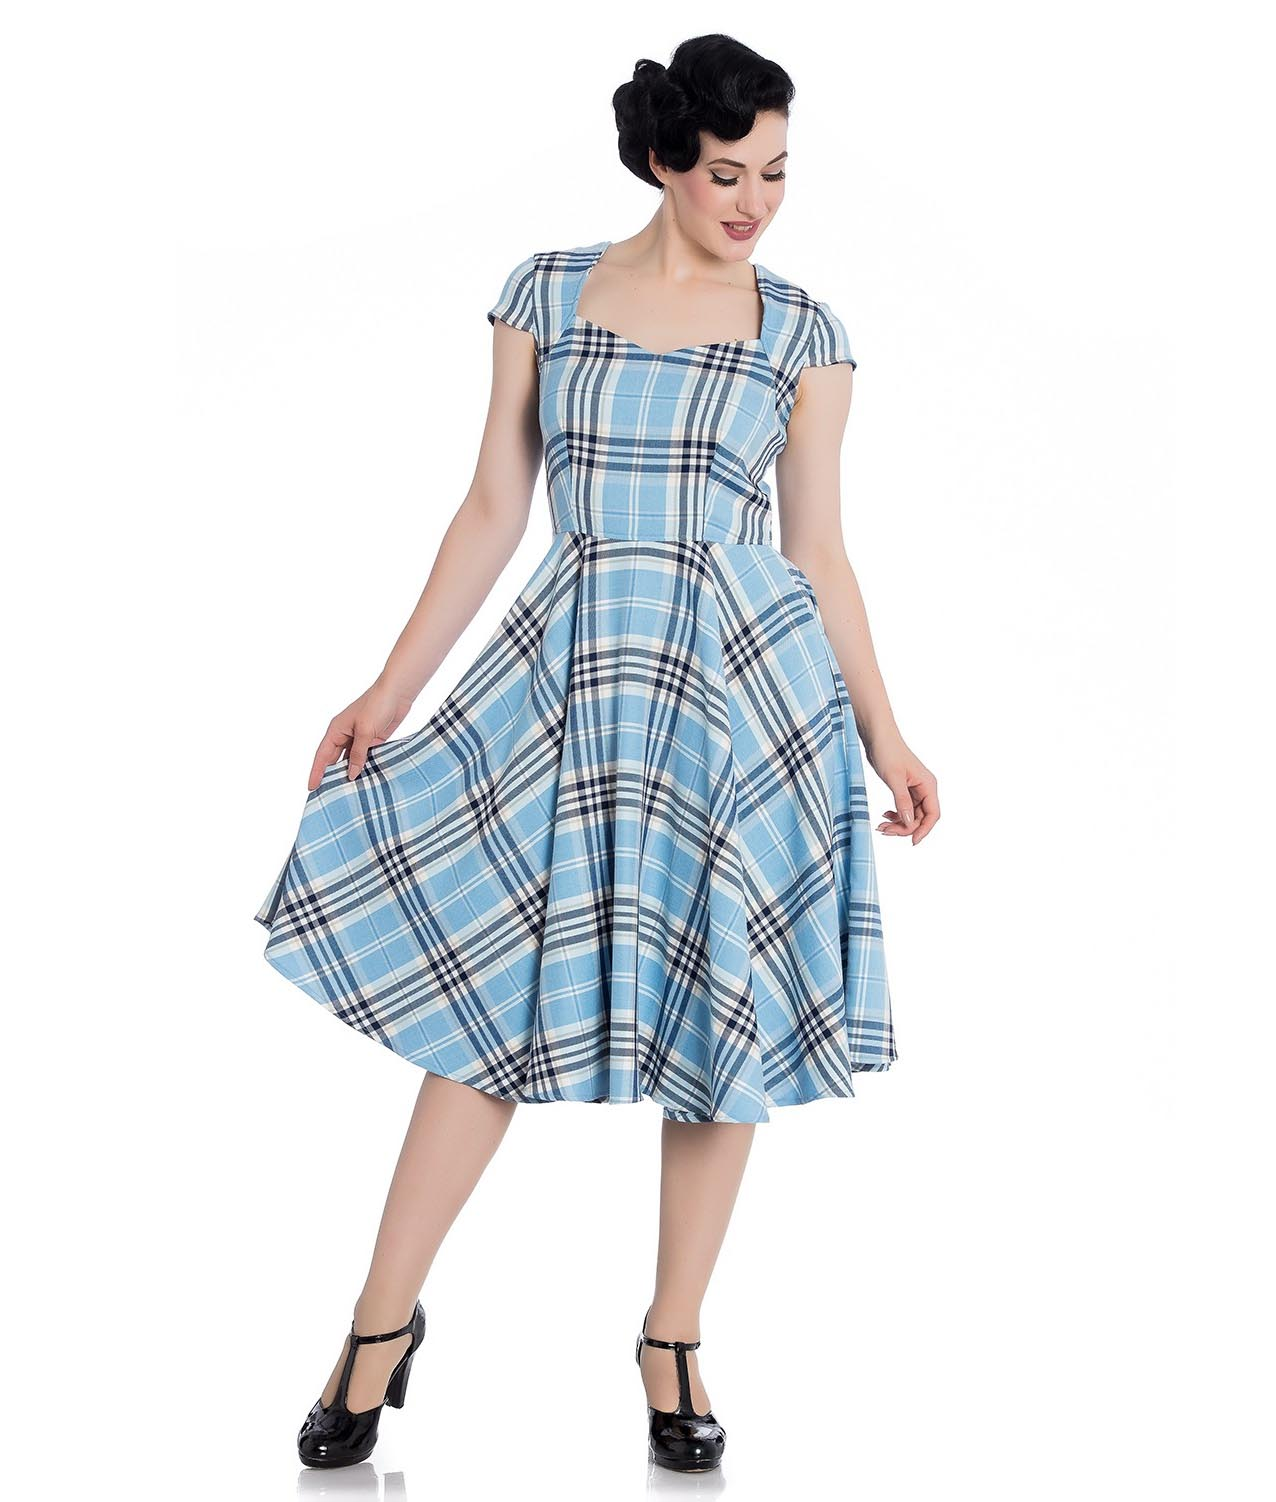 Hell-Bunny-Pinup-50s-Dress-ABERDEEN-Hogmony-Sky-Blue-amp-White-Tartan-All-Sizes thumbnail 11